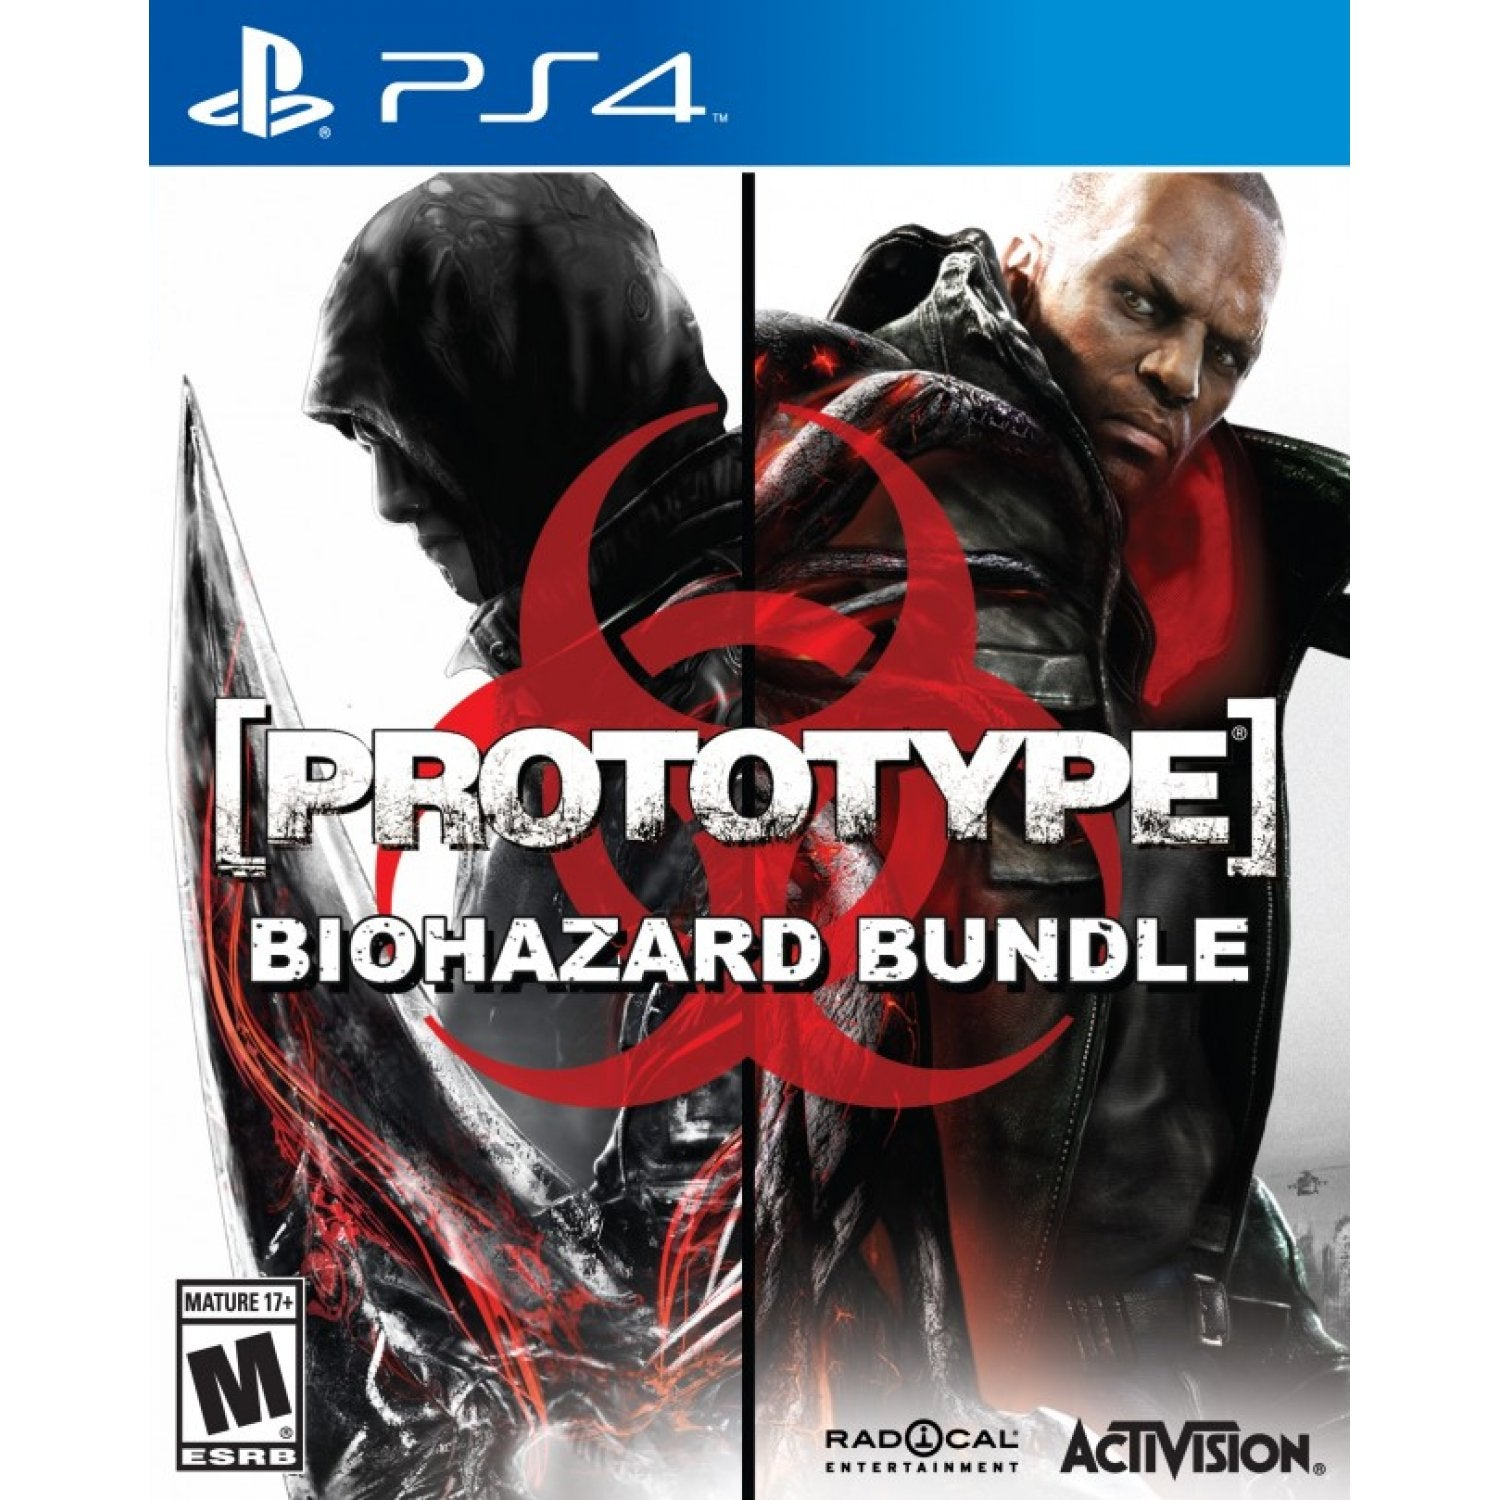 Category Game Tagged Ps4 Page 4 Bravo Team Vr Aim Controller Region 3 English Prototype Biohazard Bundle